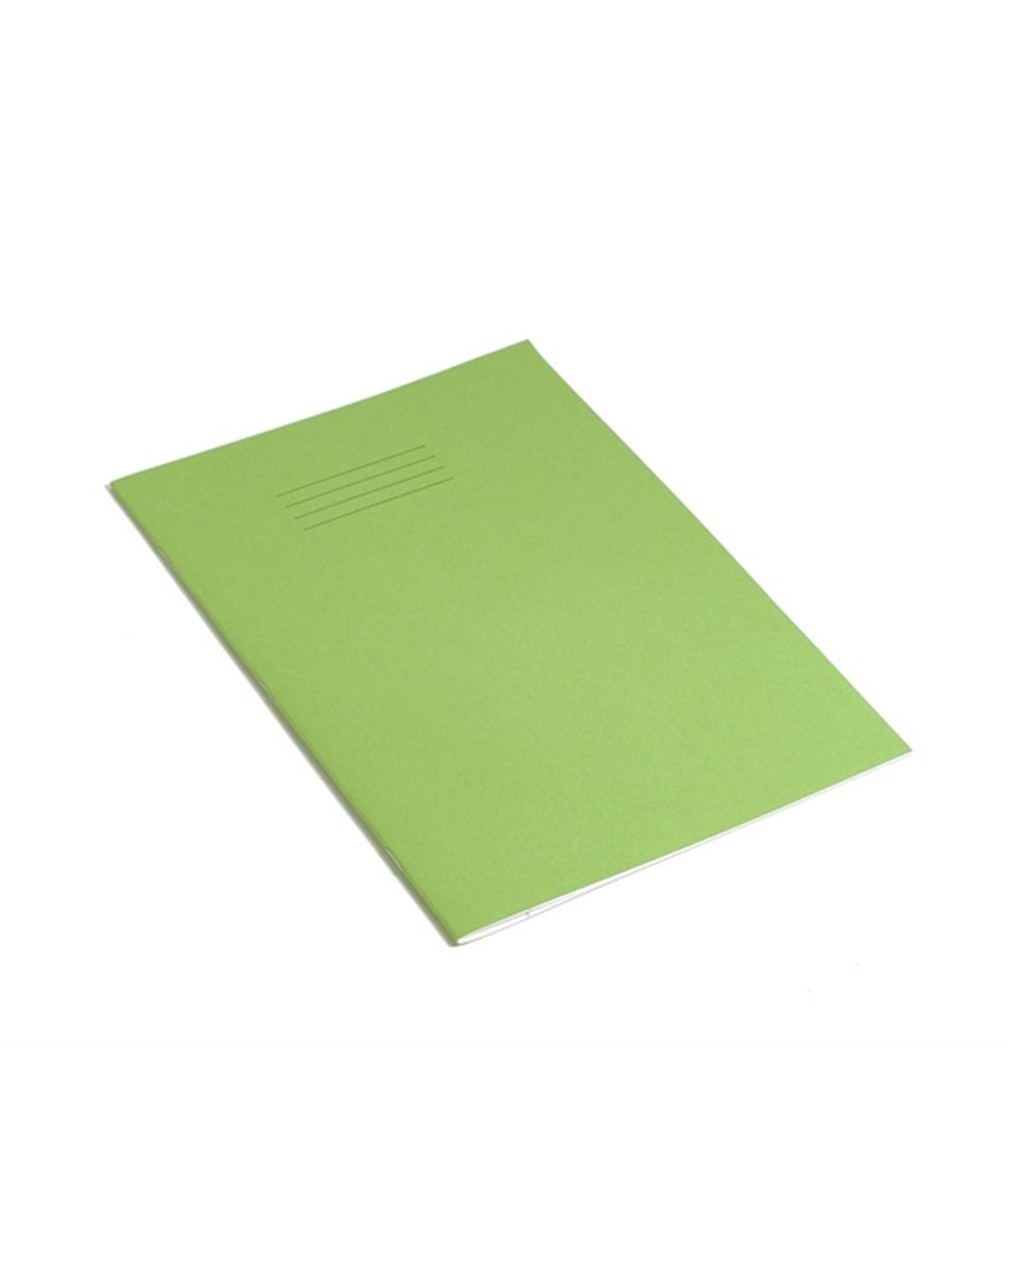 Exercise Book A4 (297 x 210mm) Light Green Cover 8mm Ruled & Margin 96 Pages